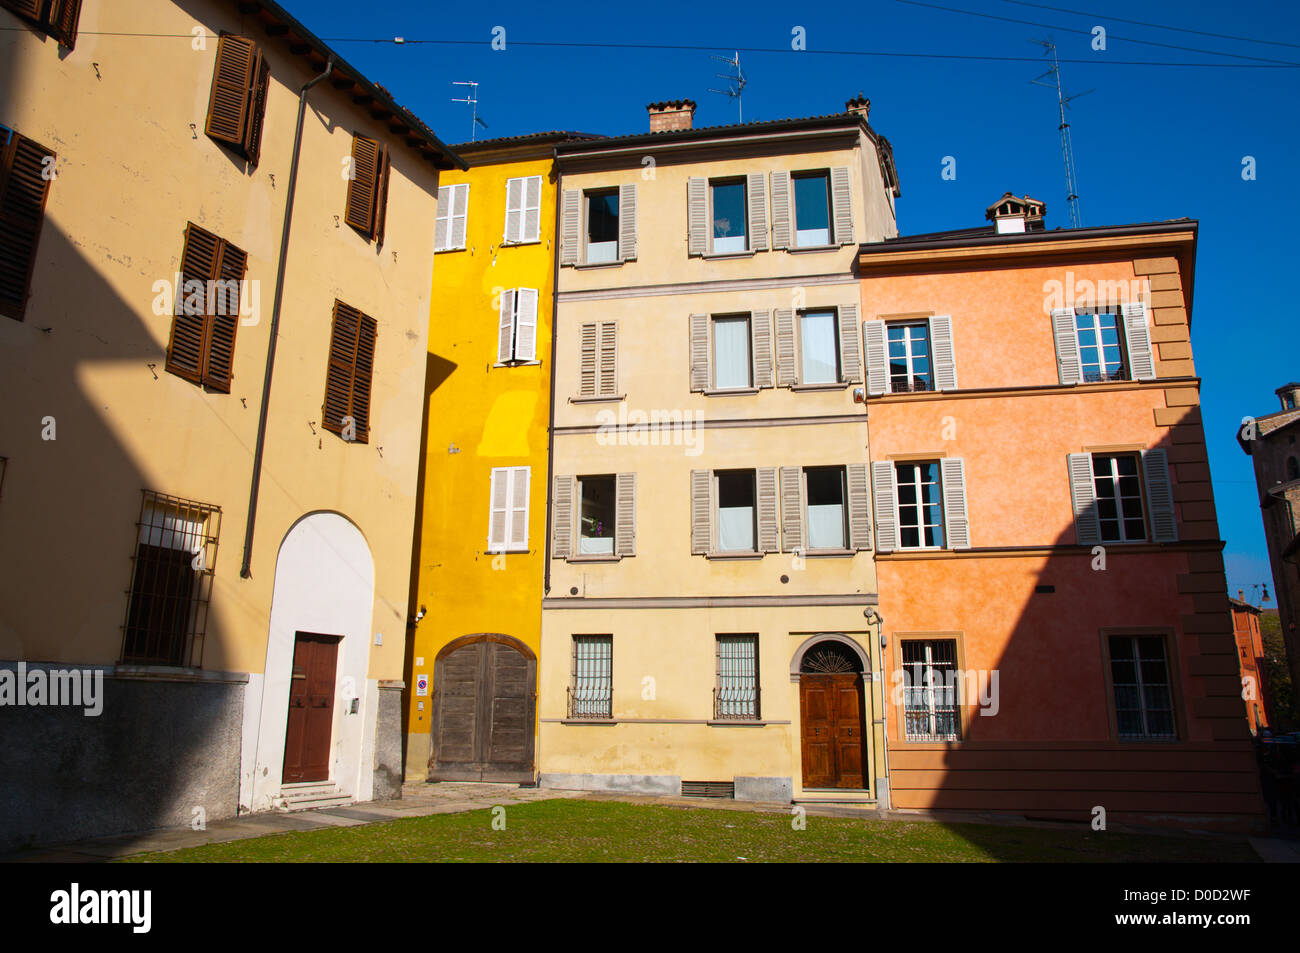 Colourful residential housing in central Parma city Emilia-Romagna region central Italy Europe - Stock Image